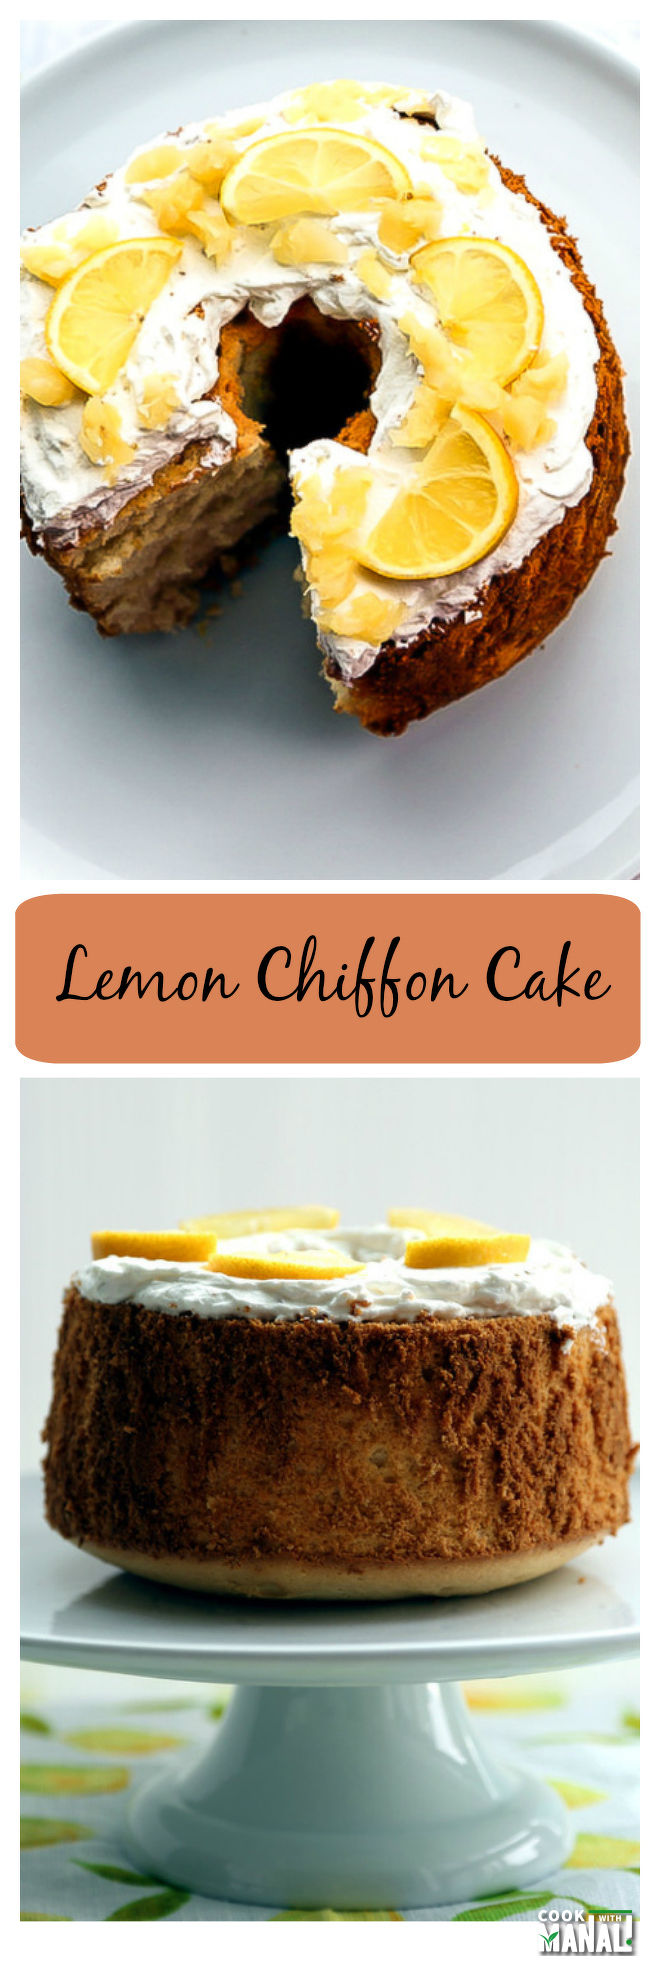 Lemon-Chiffon-Spring-Cake-Collage